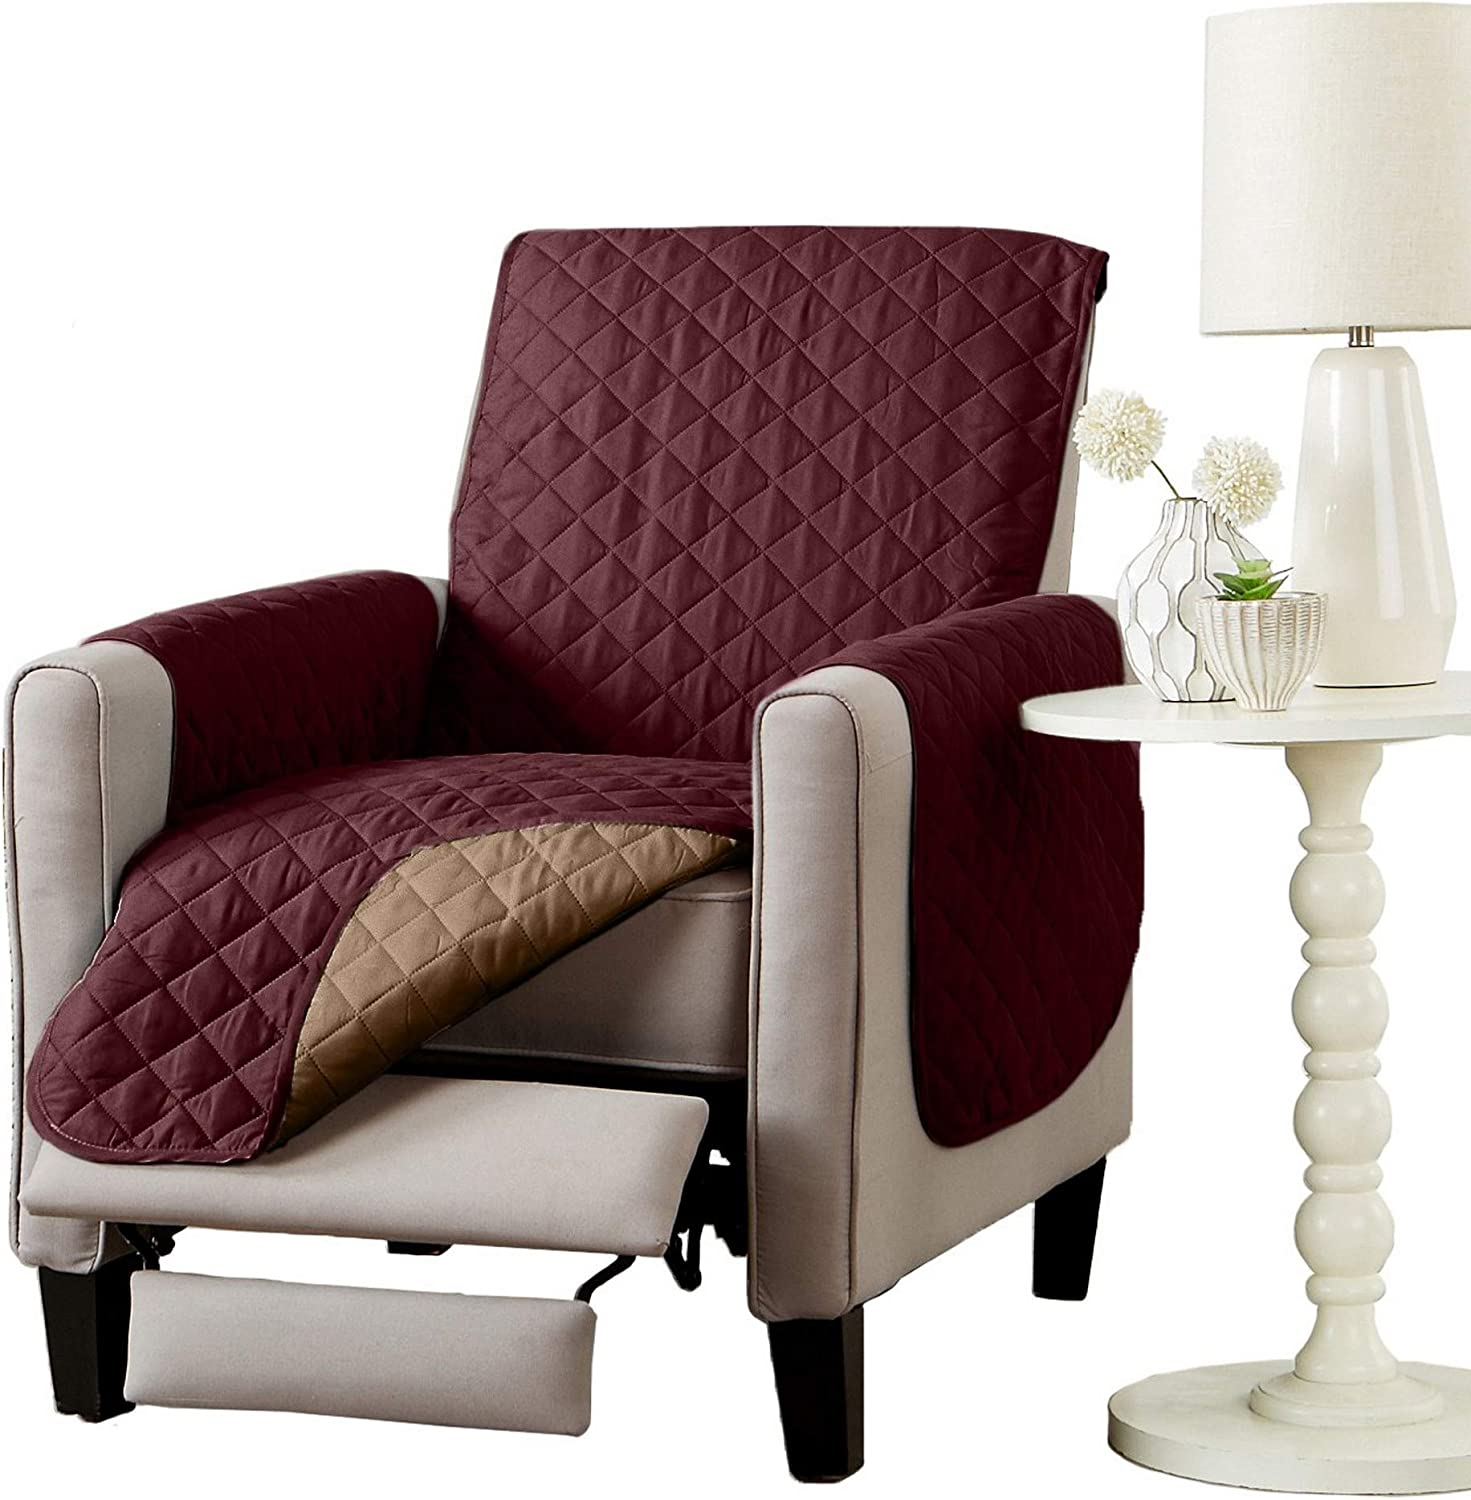 Great Bay Home Reversible Recliner Protector. Furniture Protector for Living Room with Secure Straps. Furniture Protectors for Kids, Dogs and Pets. Skylar Collection (Recliner, Burgundy/Taupe)